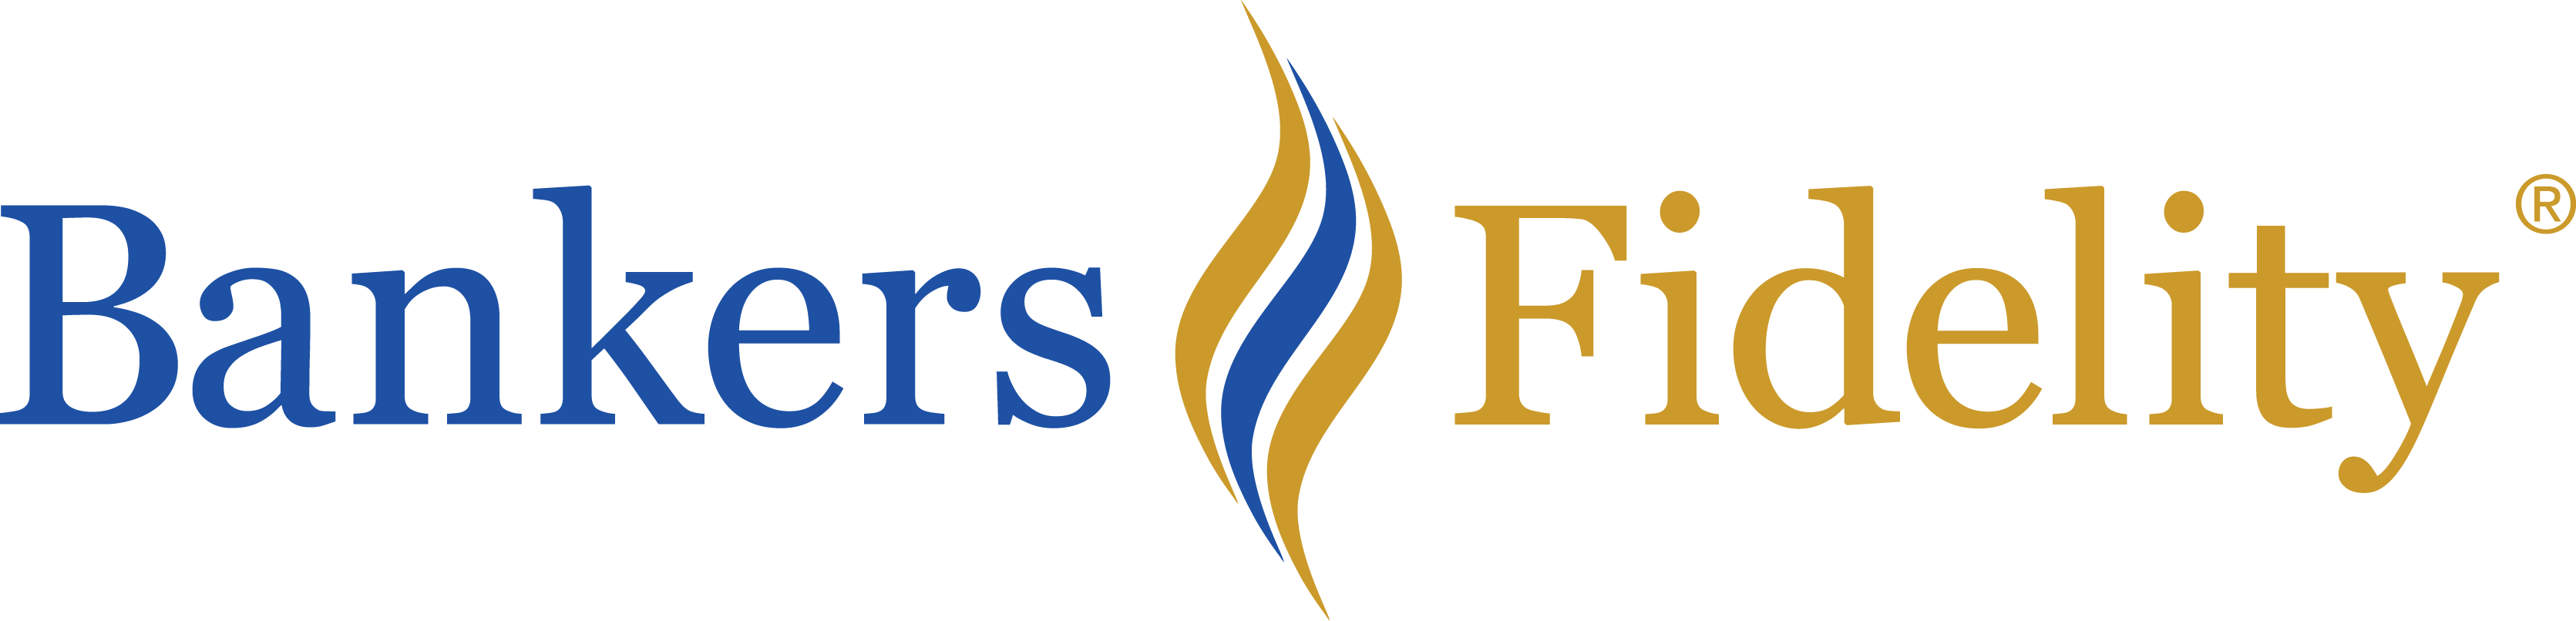 Bankers Fidelity Insurance Company